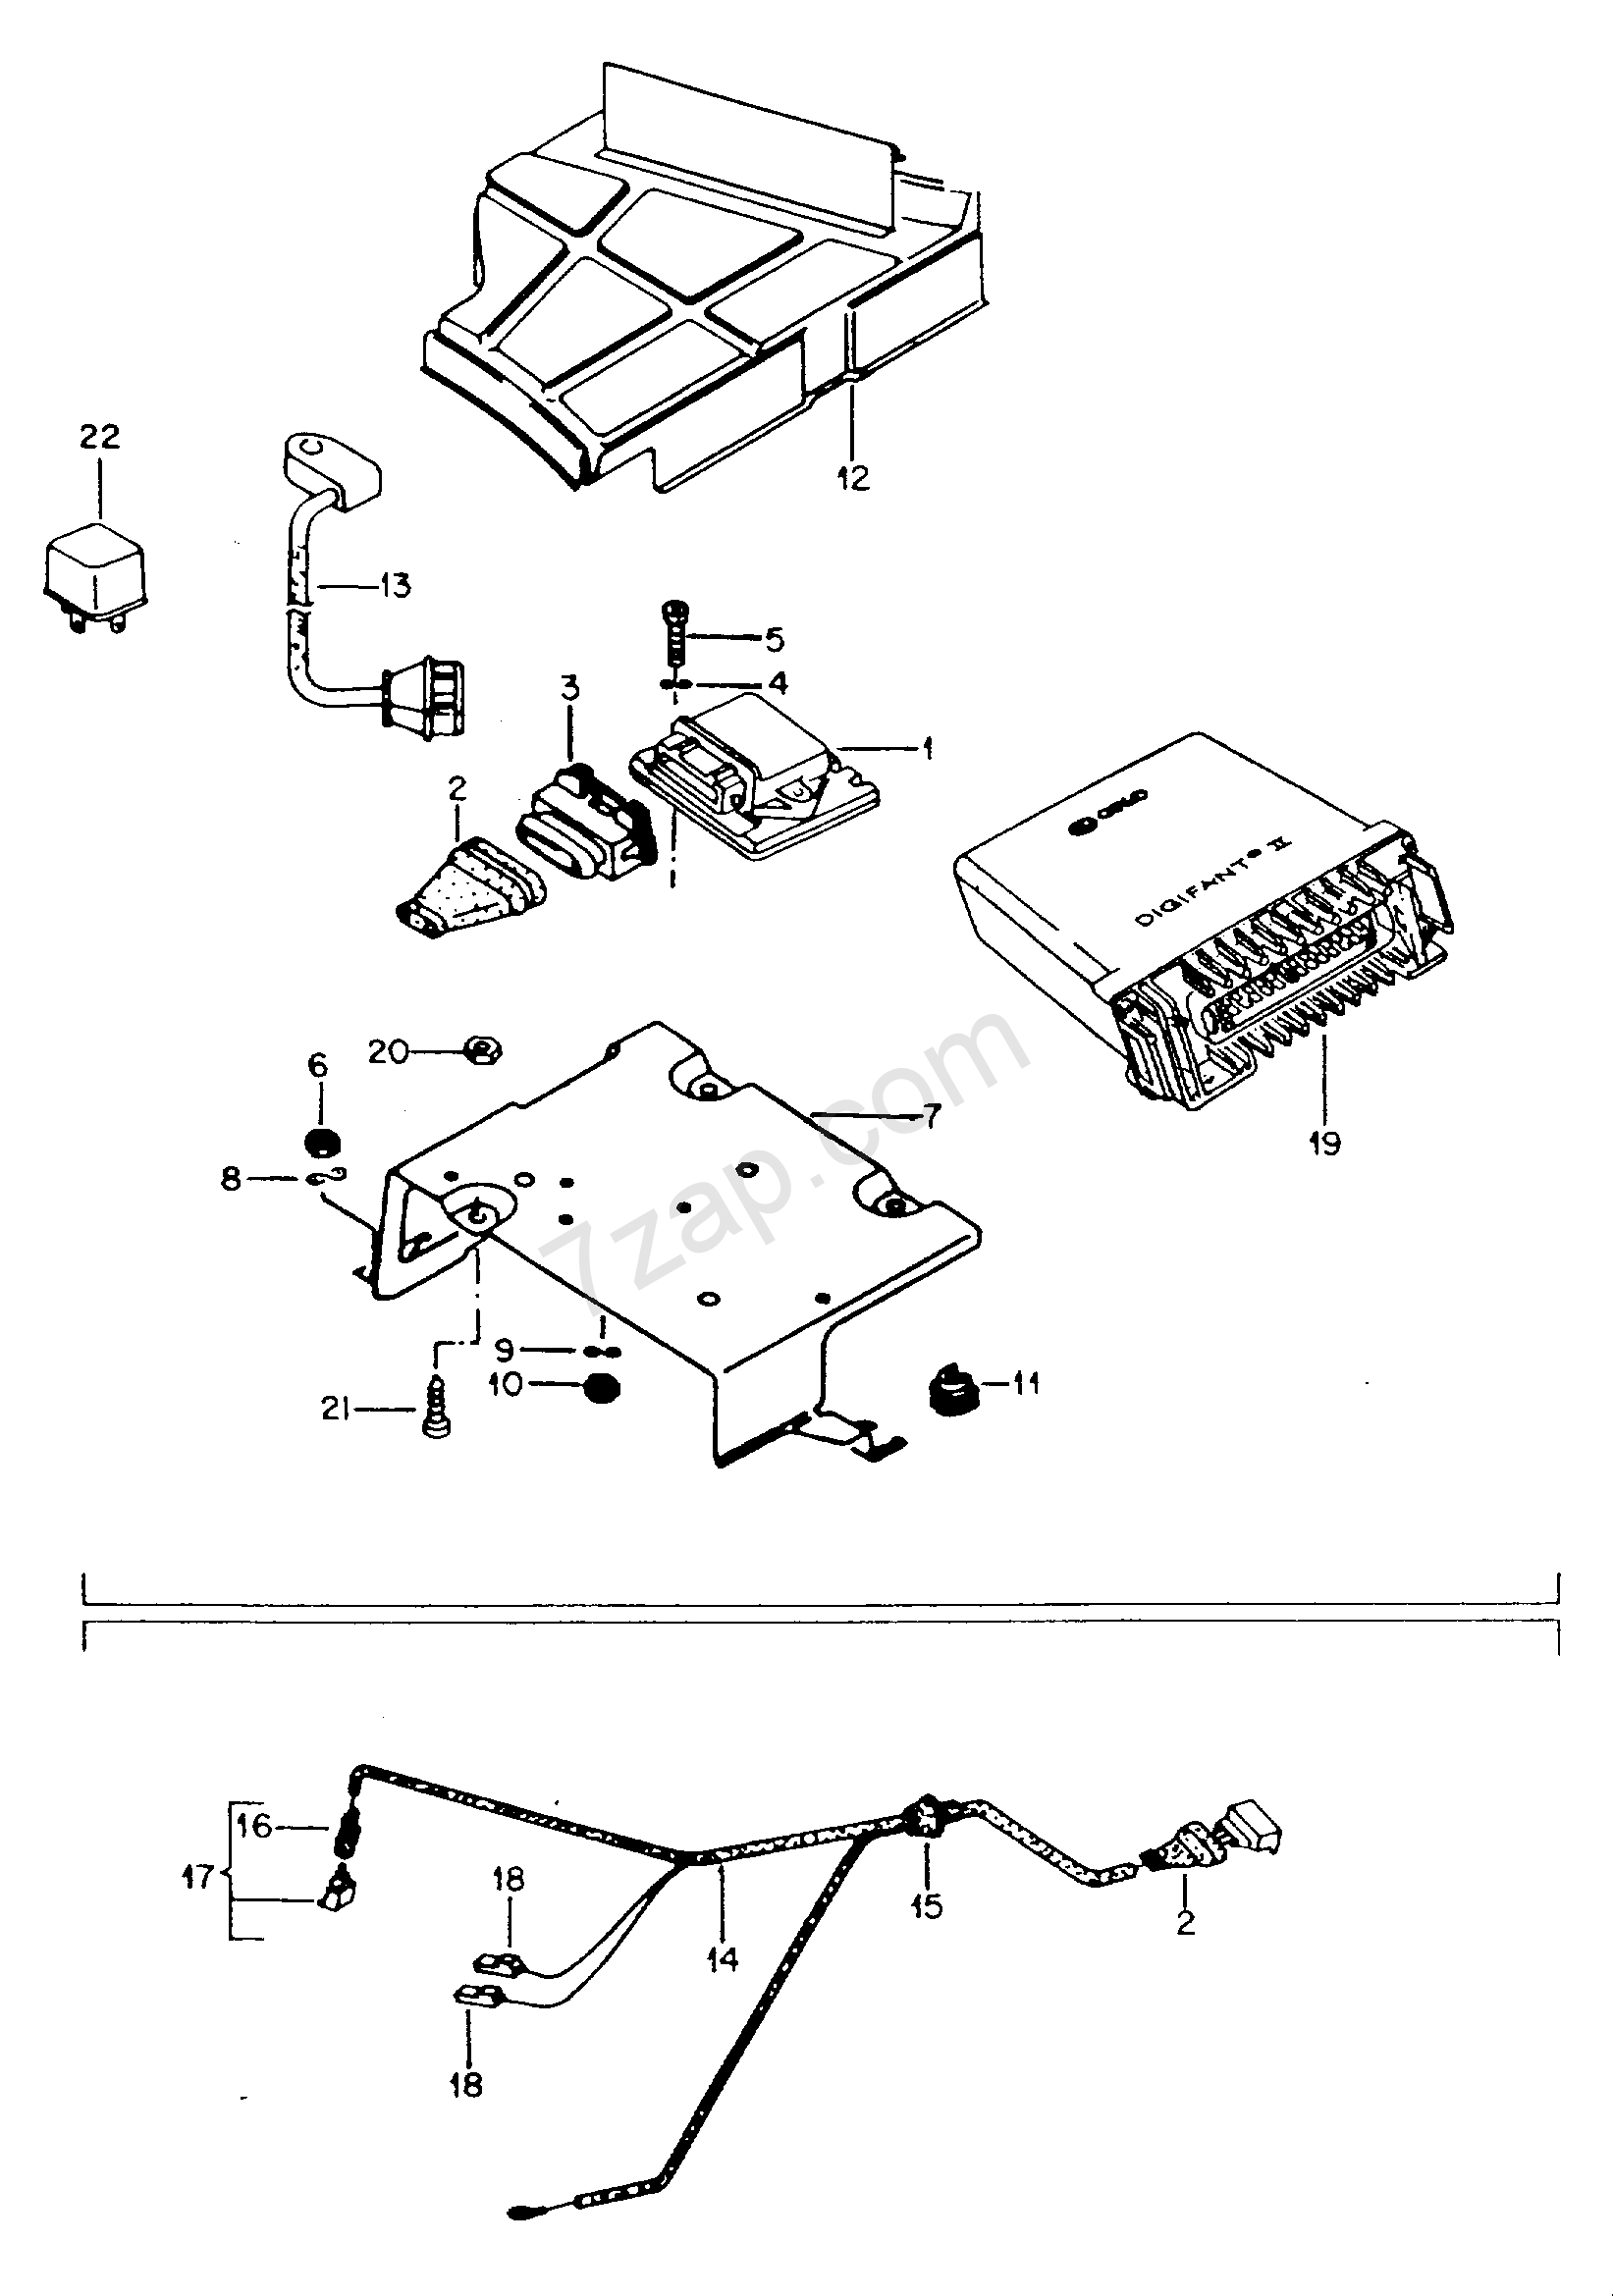 switch unit \'tci\'; knock sensor; wiring harness fo... Golf (GO) 1989 ...